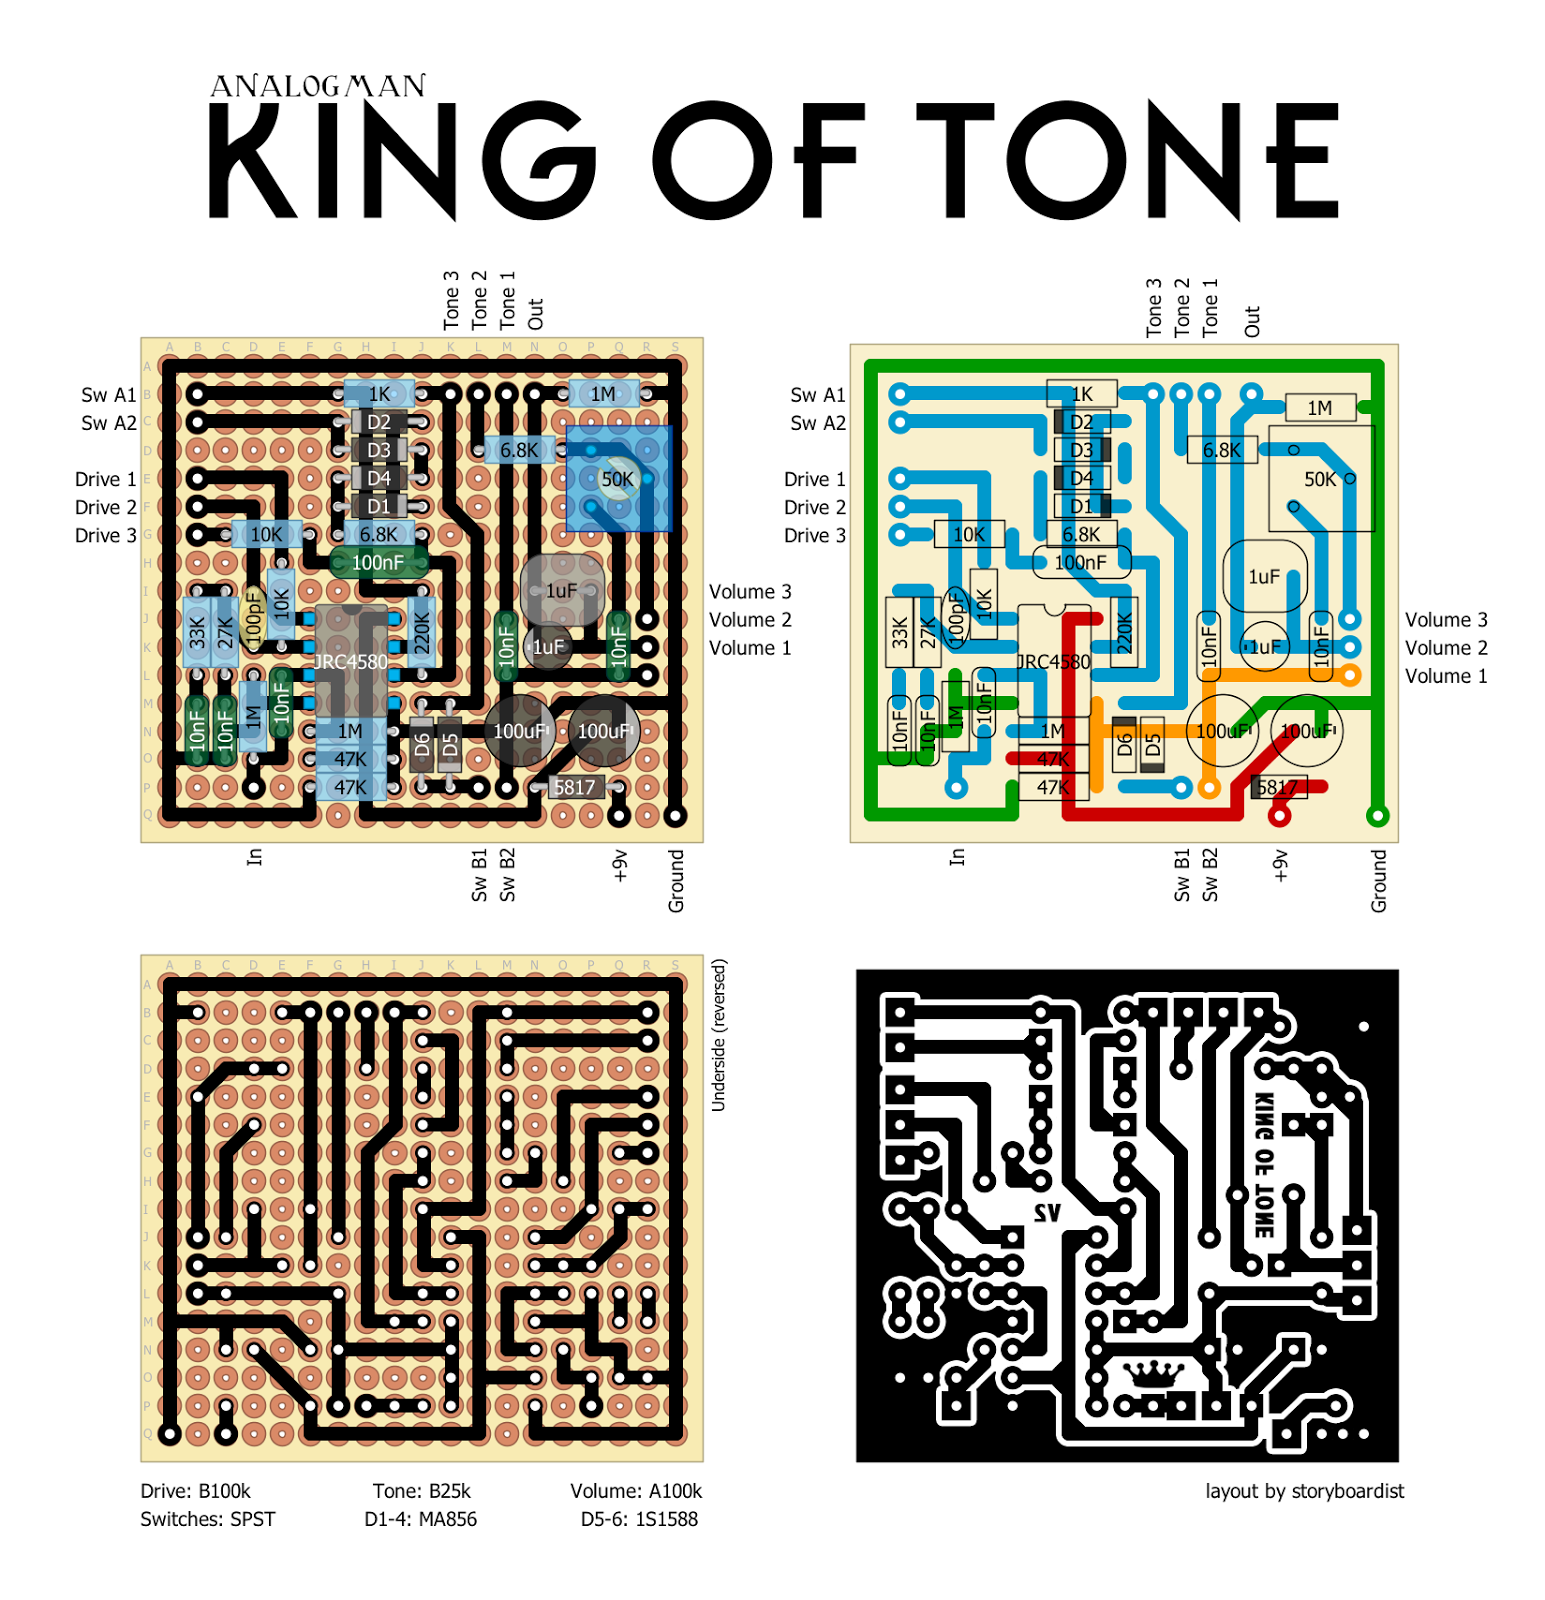 Analogman King Of Tone Schematic Modern Design Wiring Diagram Guitar Pedal Perf And Pcb Effects Layouts Rh Effectslayouts Blogspot Com V4 Best Settings